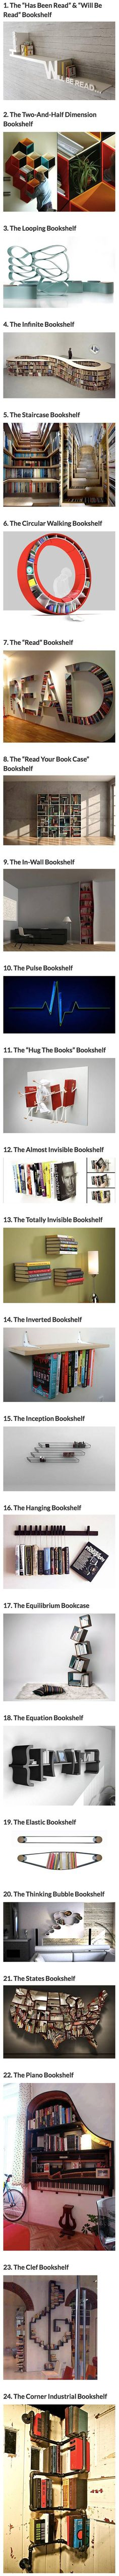 We have rounded up some cool and creative bookshelves that geeks would love. On the states one, I would put books in each state according to where it was set.